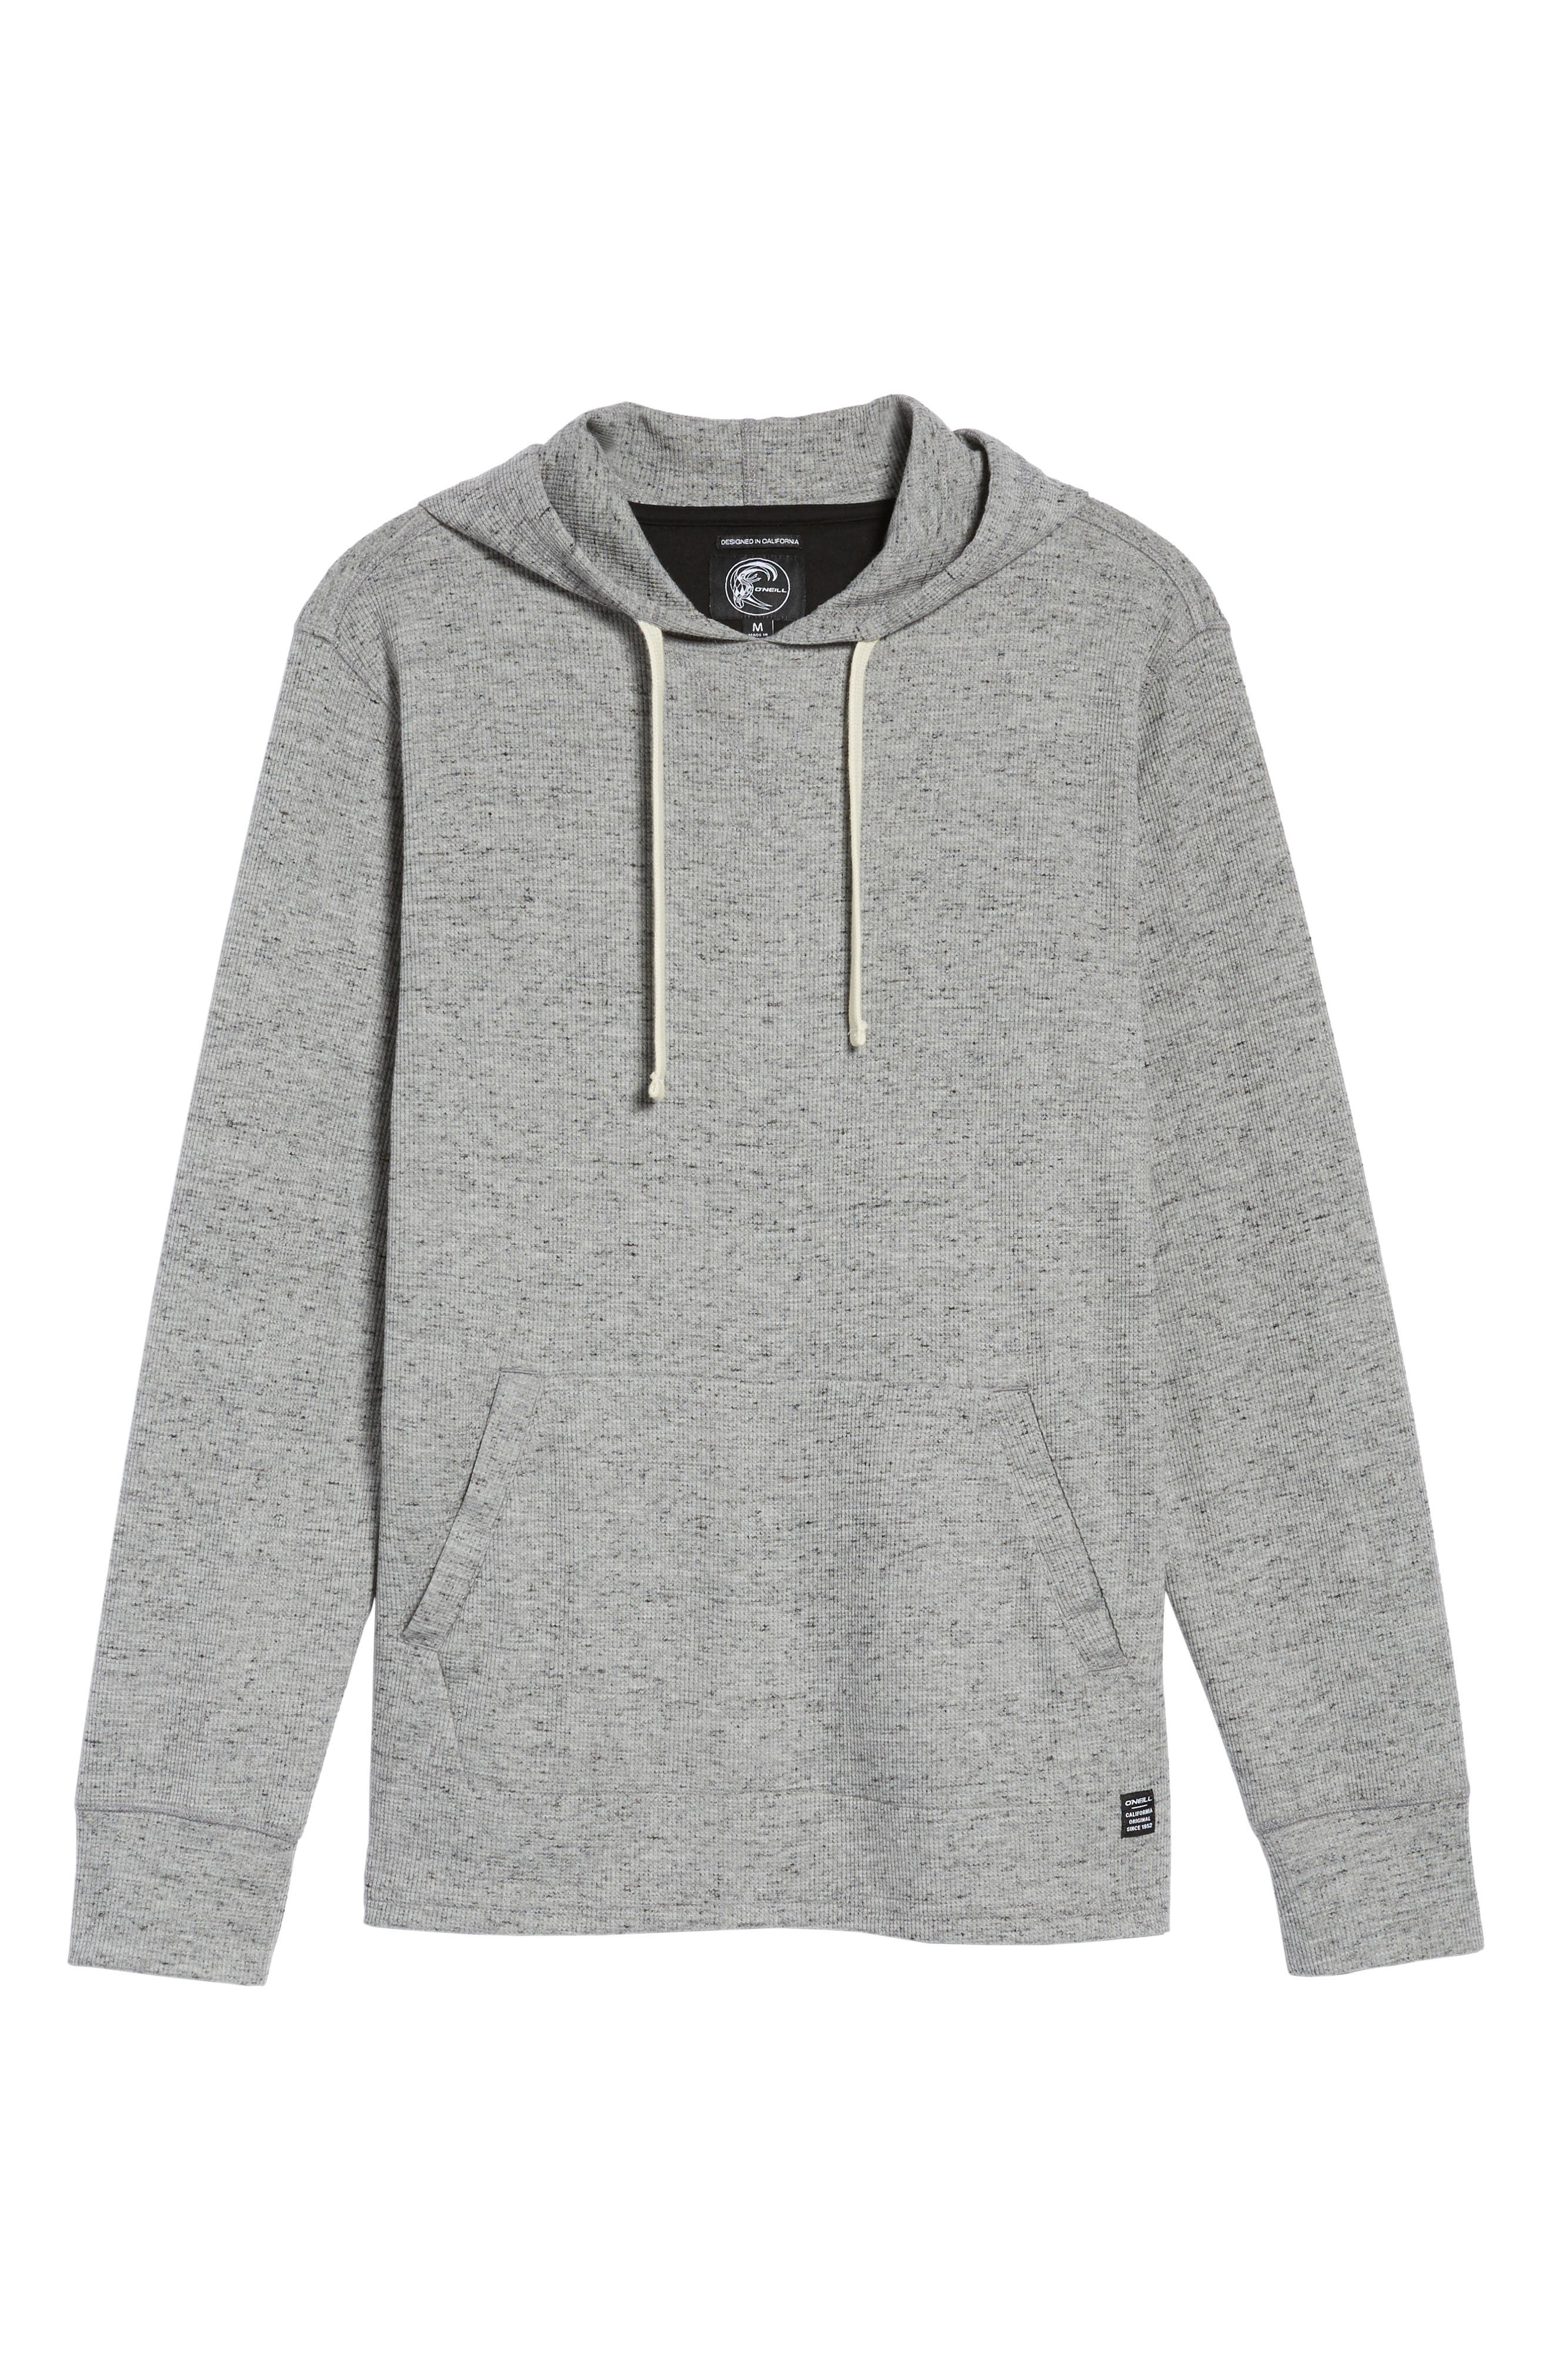 Boldin Thermal Pullover Hoodie,                             Alternate thumbnail 11, color,